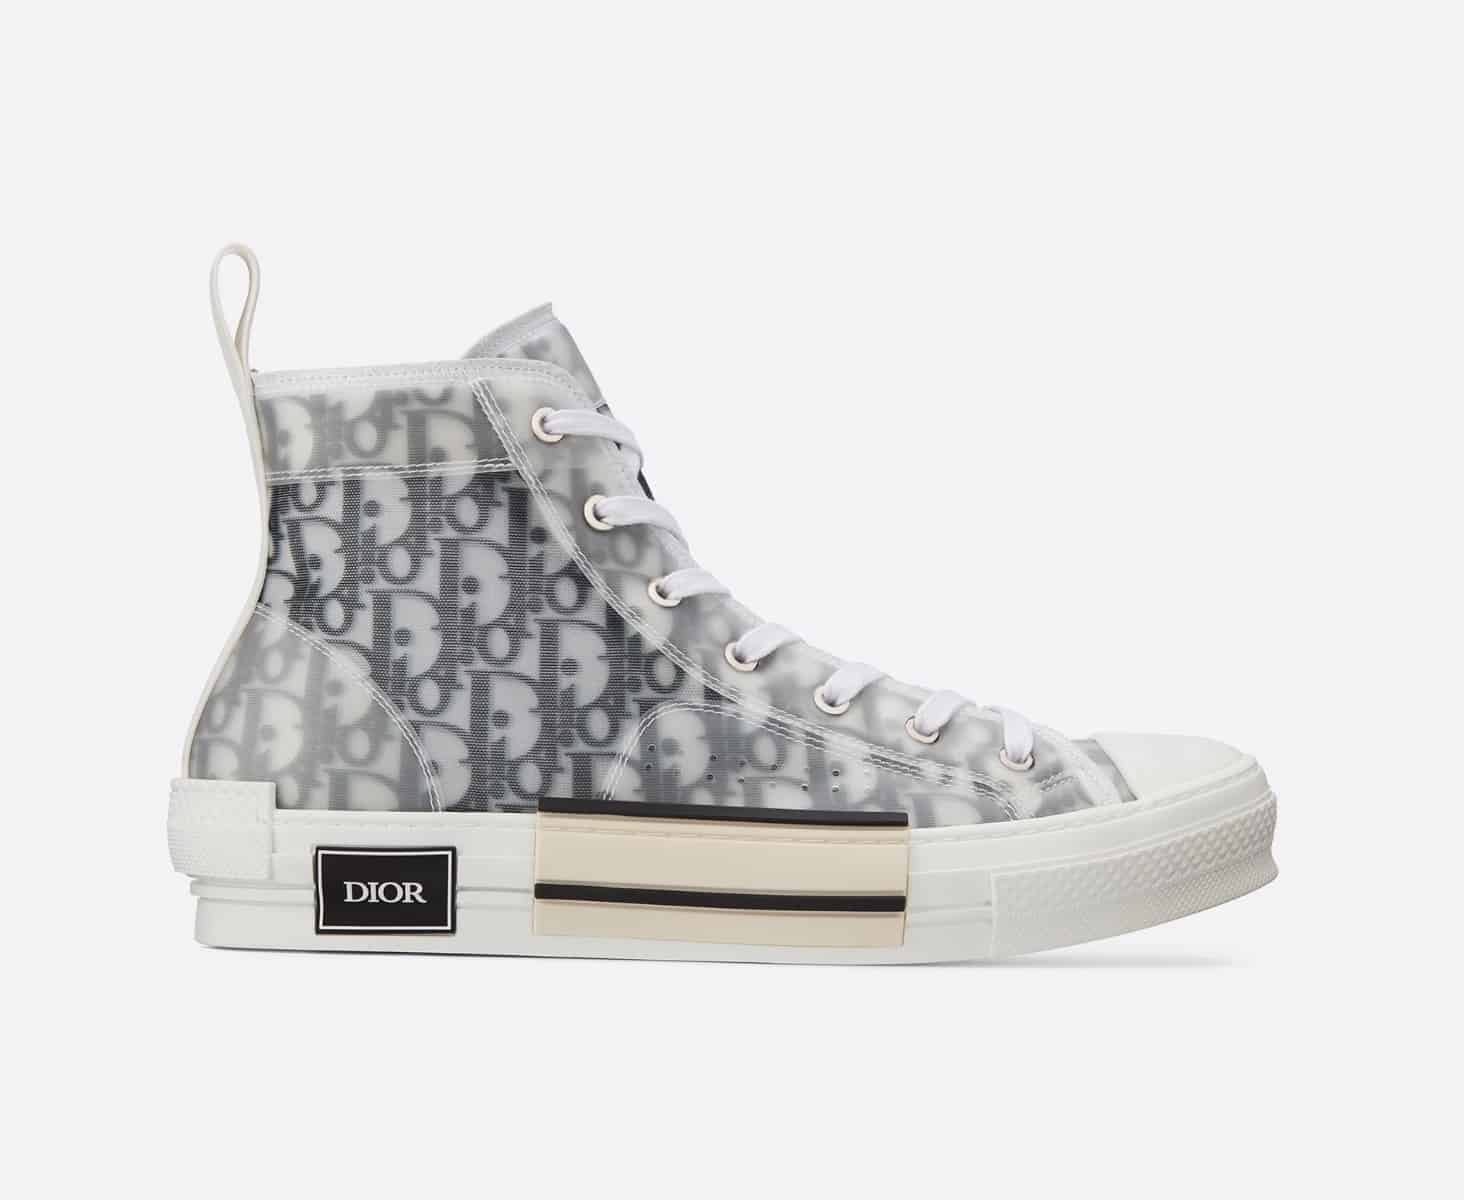 Best Fashion Brand Replica Boots Cheap Branded Copy Sneakers Fake Shoes AliExpress China Wholesale Dior Logo High Top Sneaker B23